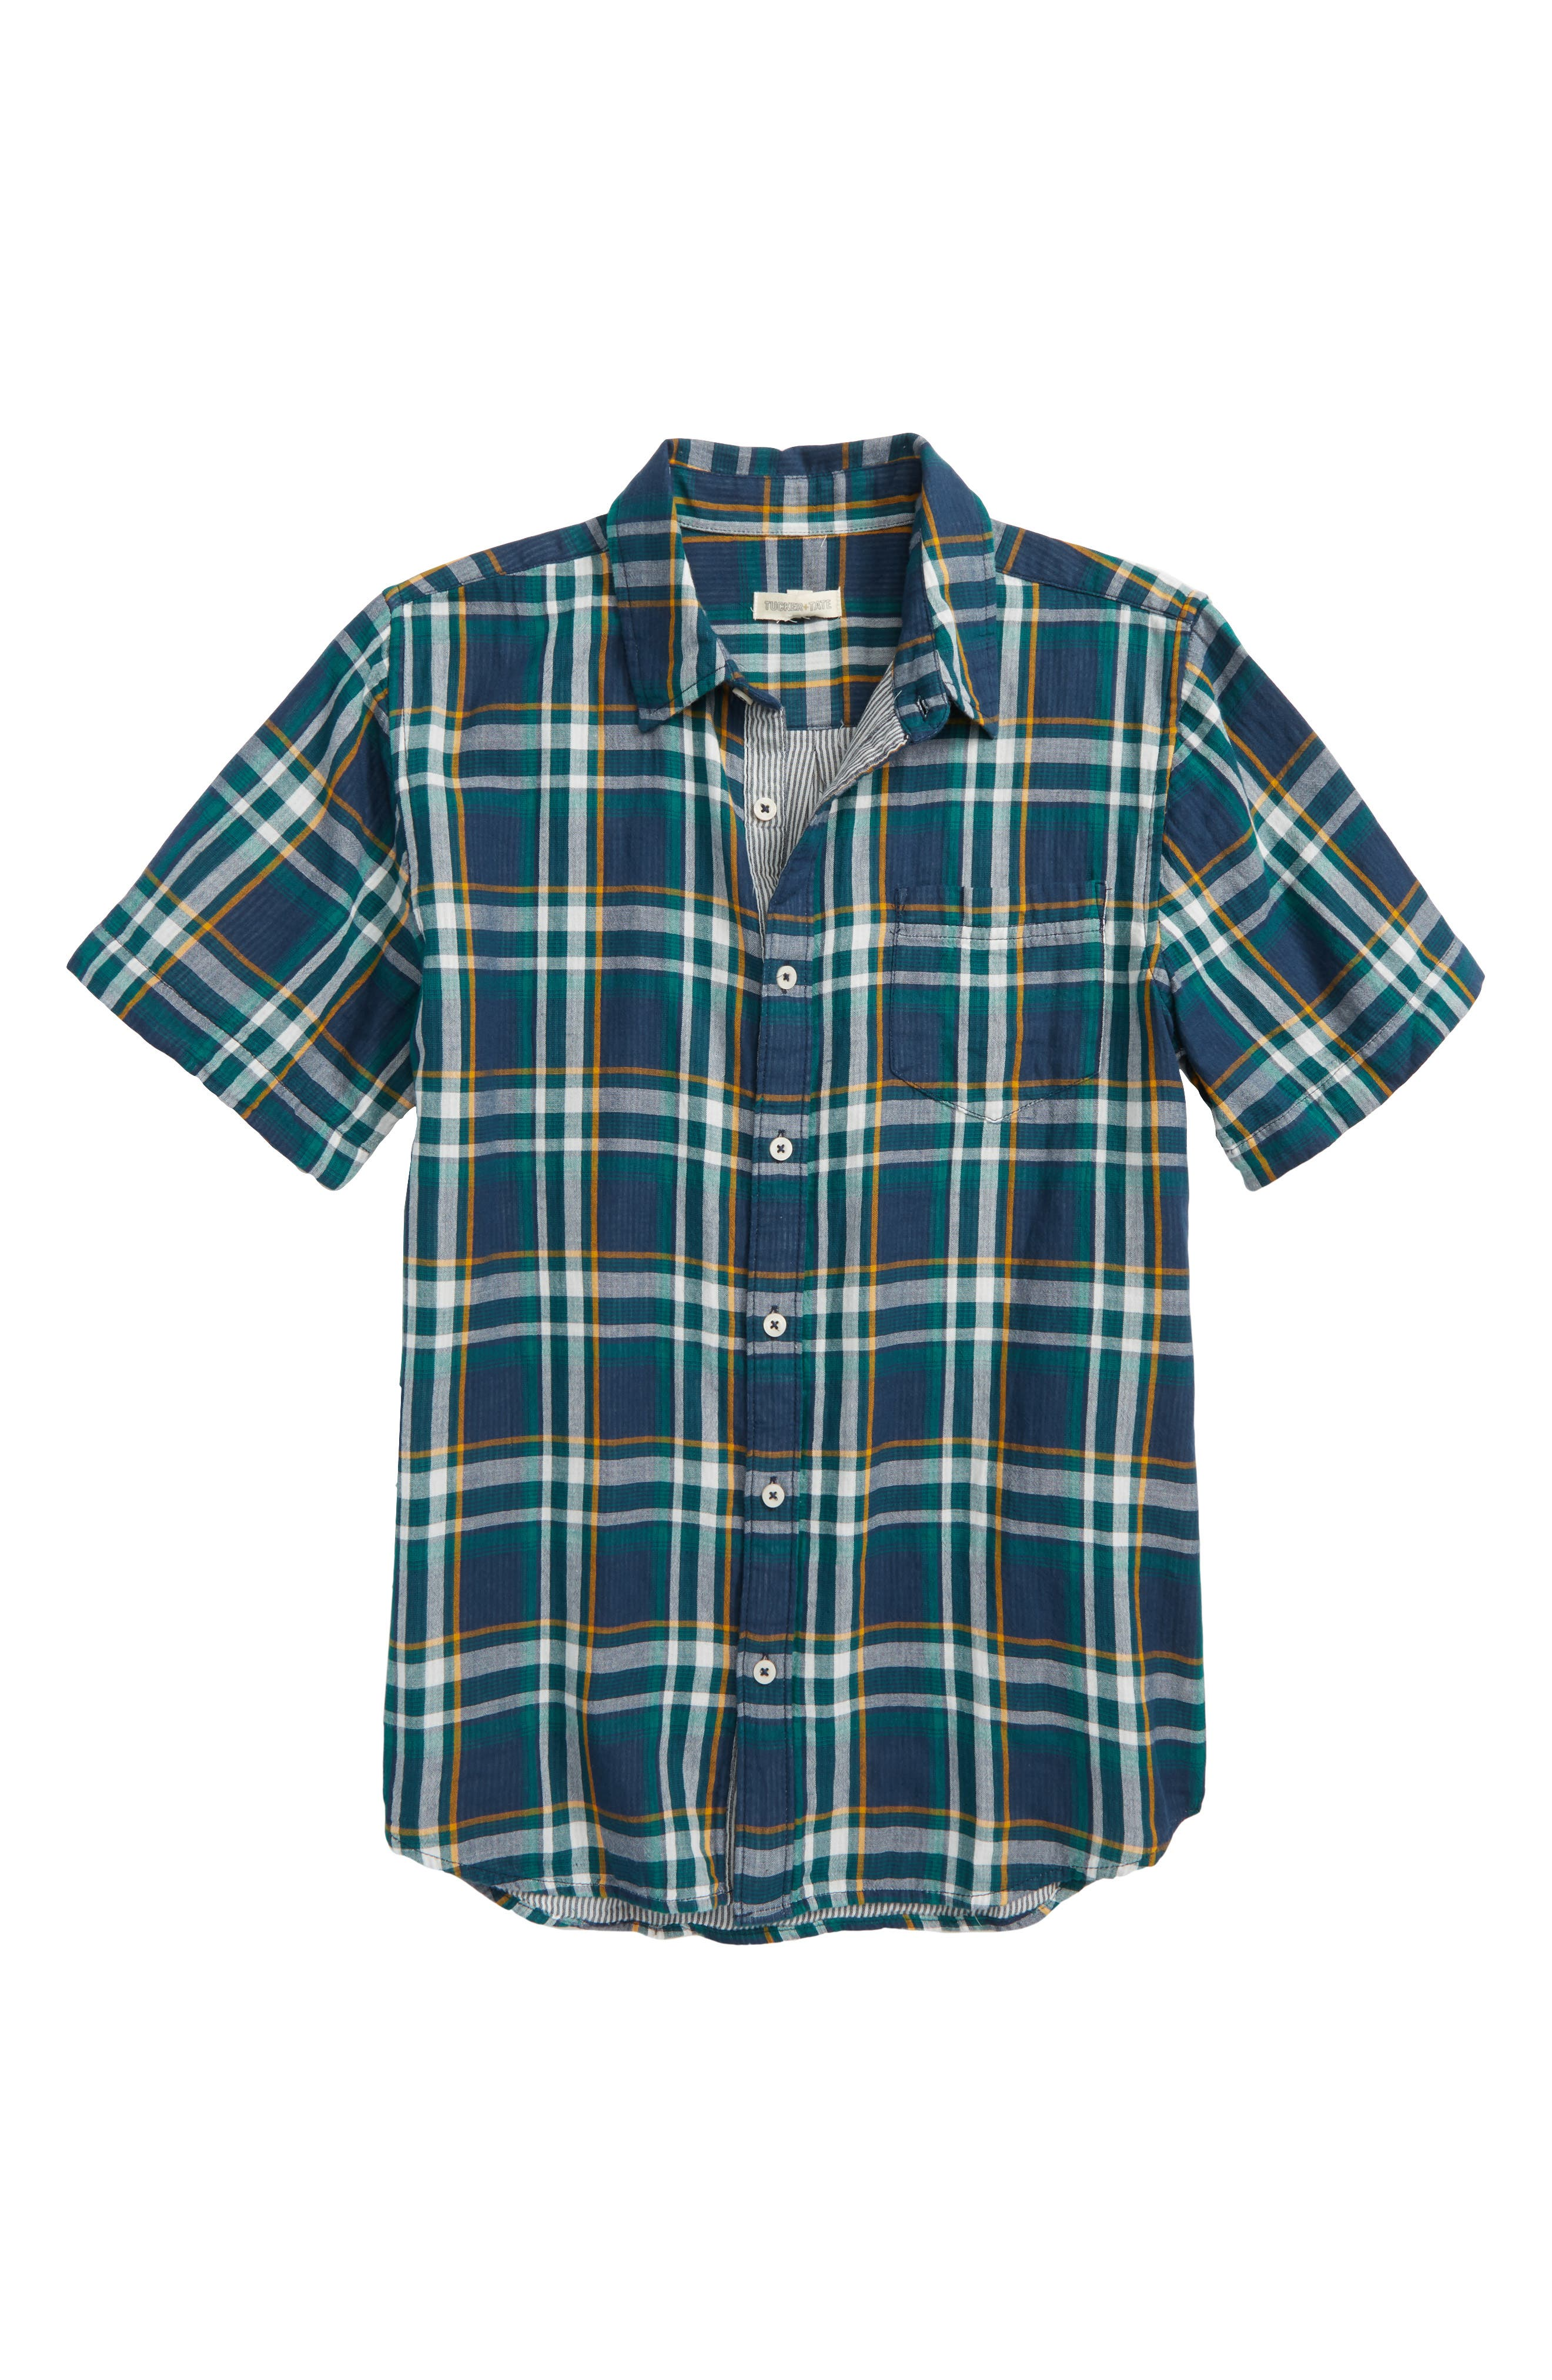 Plaid Woven Shirt,                         Main,                         color, Navy Denim Multi Plaid